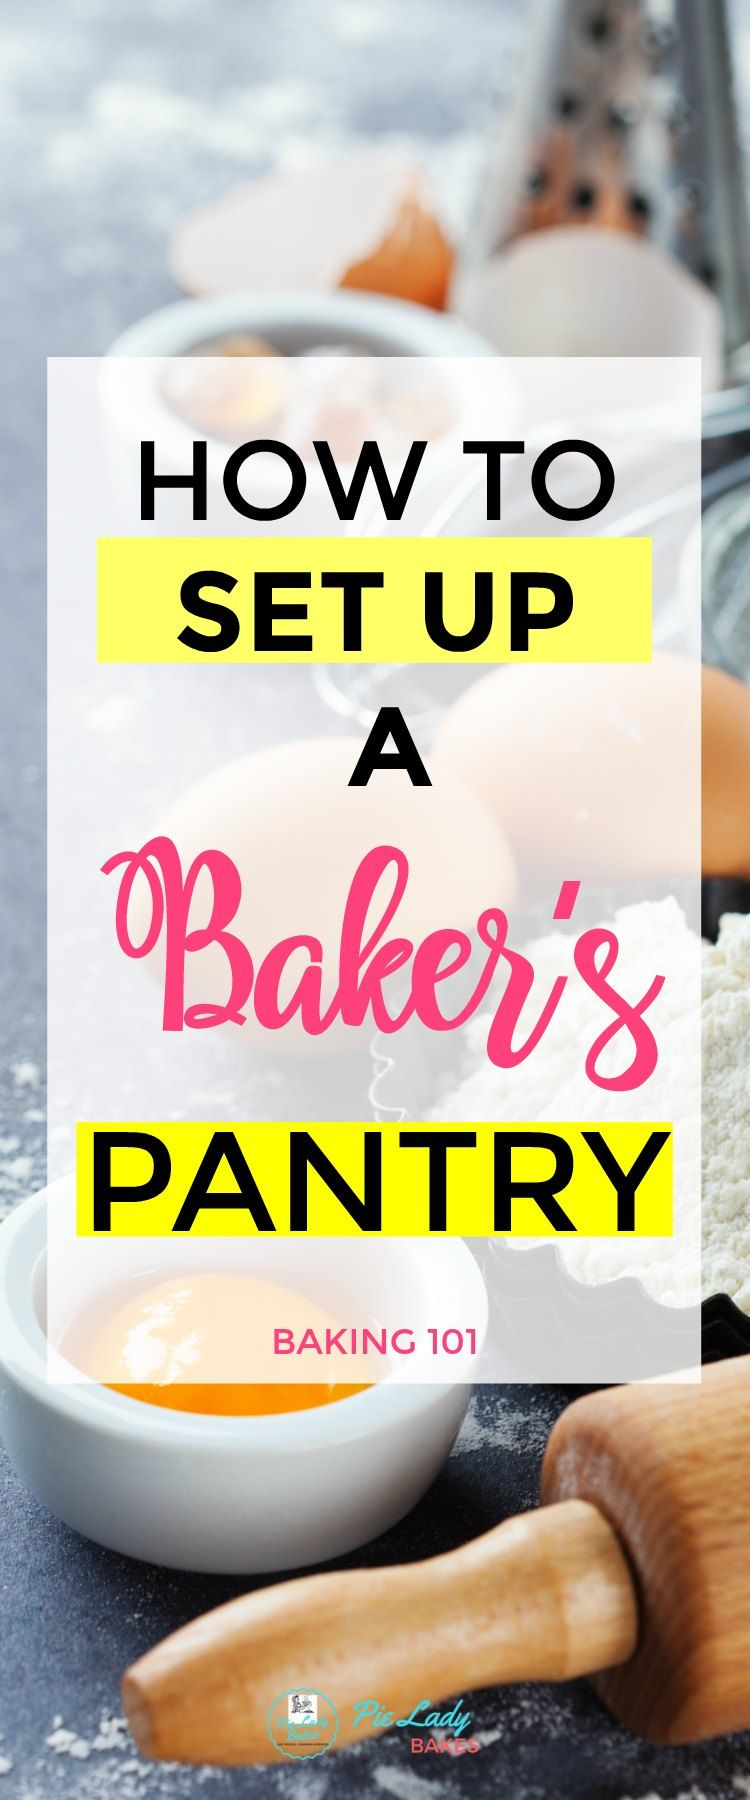 Baker S Pantry The Ultimate Guide To Getting Ready To Bake